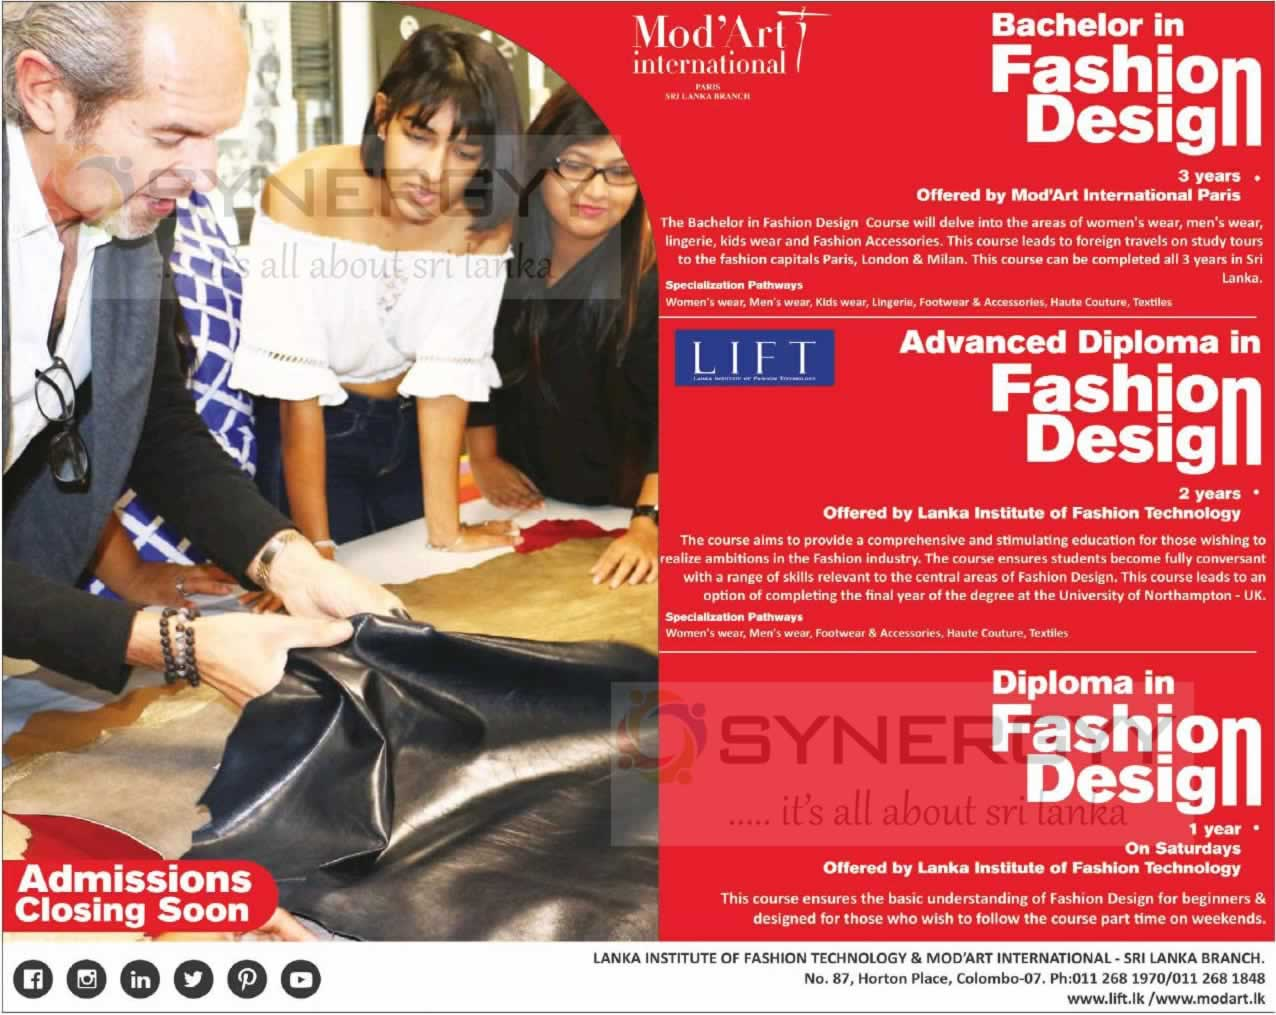 Diploma Advance Diploma And Fashion Designing Degree Programme By Lanka Institute Of Fashion Technology Modart International Education Synergyy